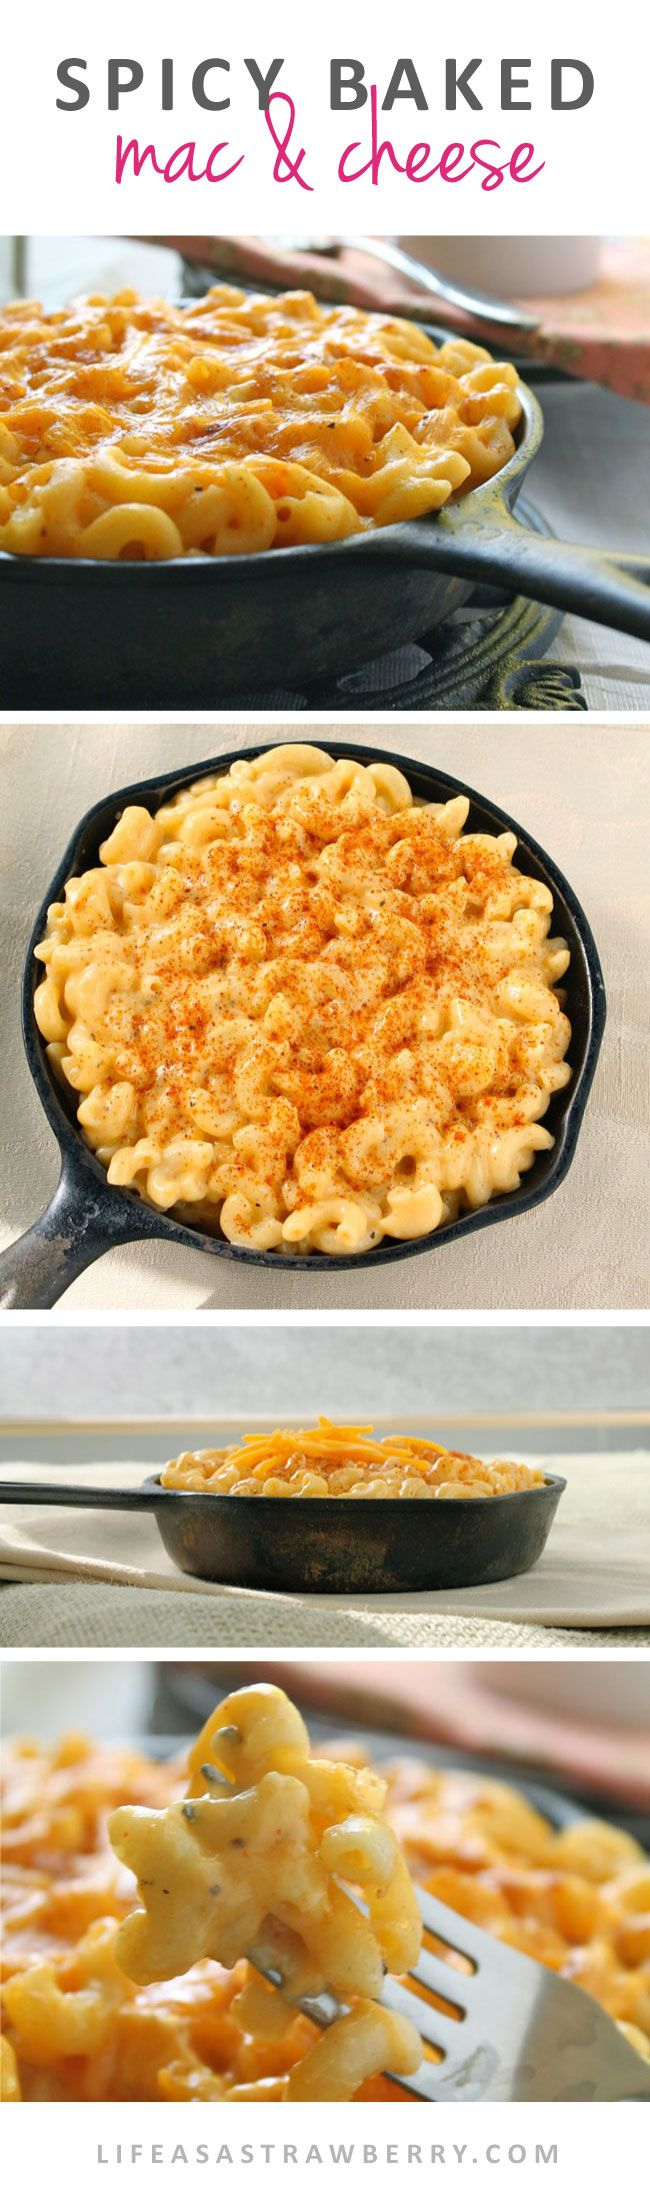 Spicy Macaroni and Cheese | Give your classic macaroni and cheese recipe a twist with this easy, slightly spicy cheese sauce - it's sure to be a hit!